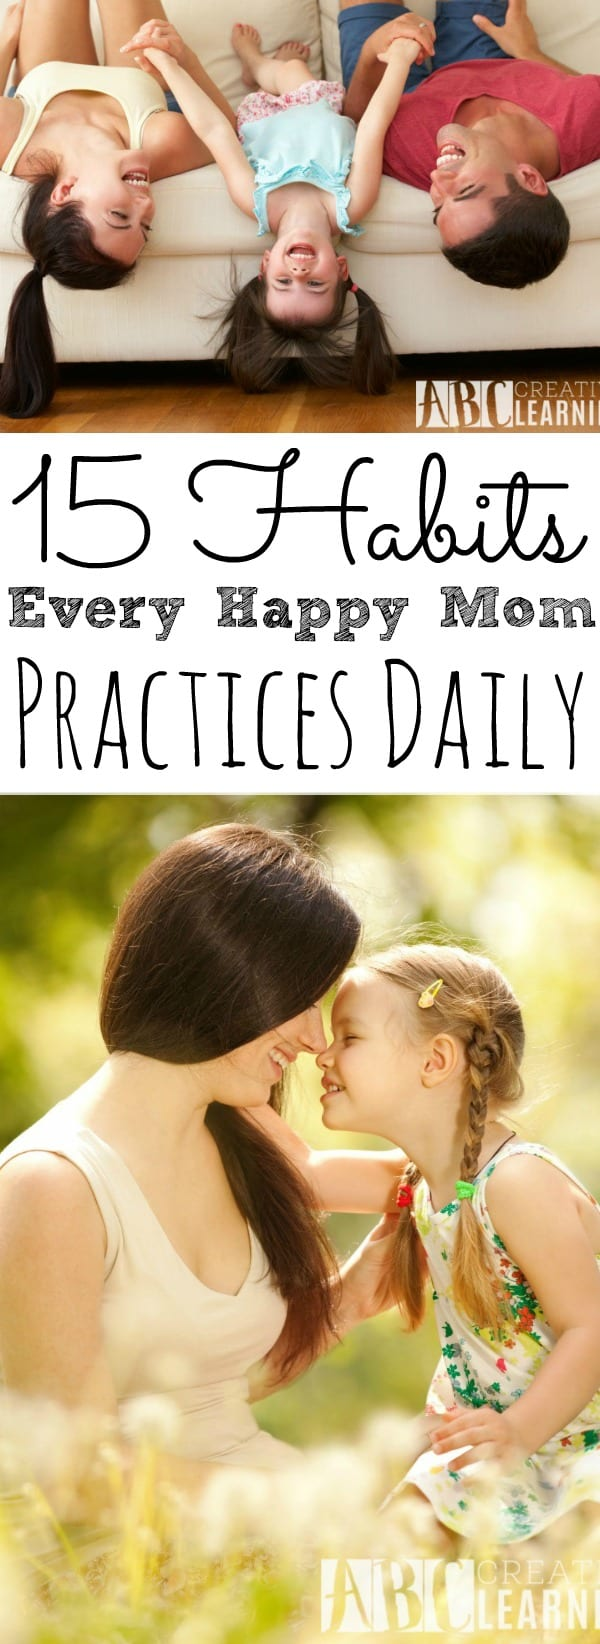 15 Habits Every Happy Mom Practices Daily - simplytodaylife.com